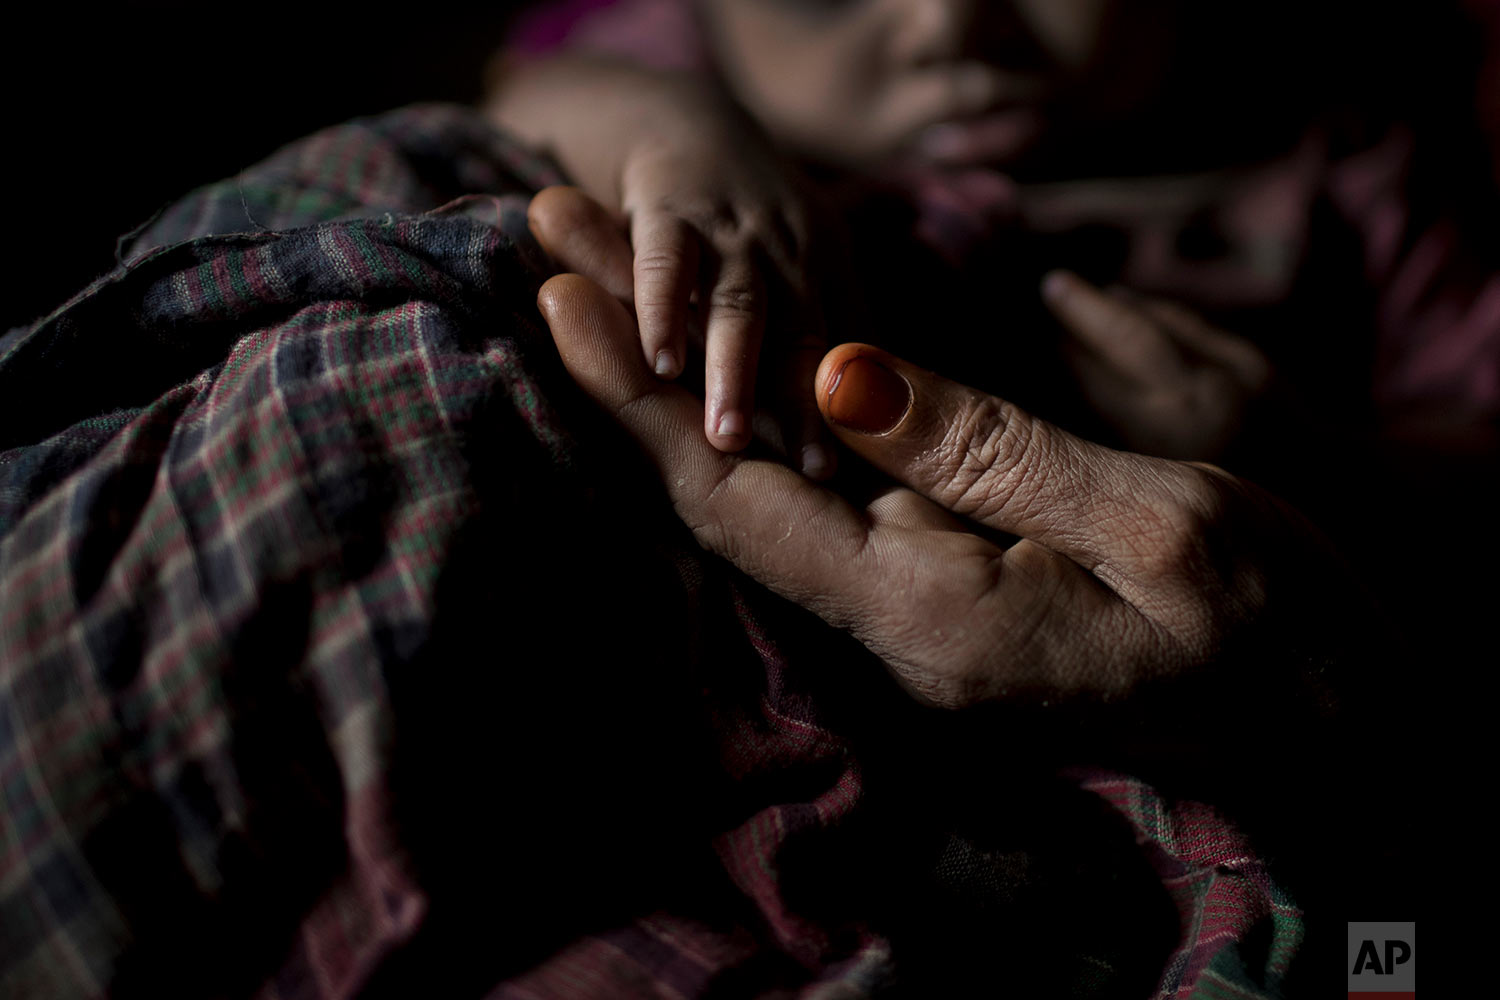 """S"" holds her baby boy's hand as she sits in her shelter in Balukhali refugee camp in Bangladesh, June 25, 2018.  (AP Photo/Wong Maye-E)"